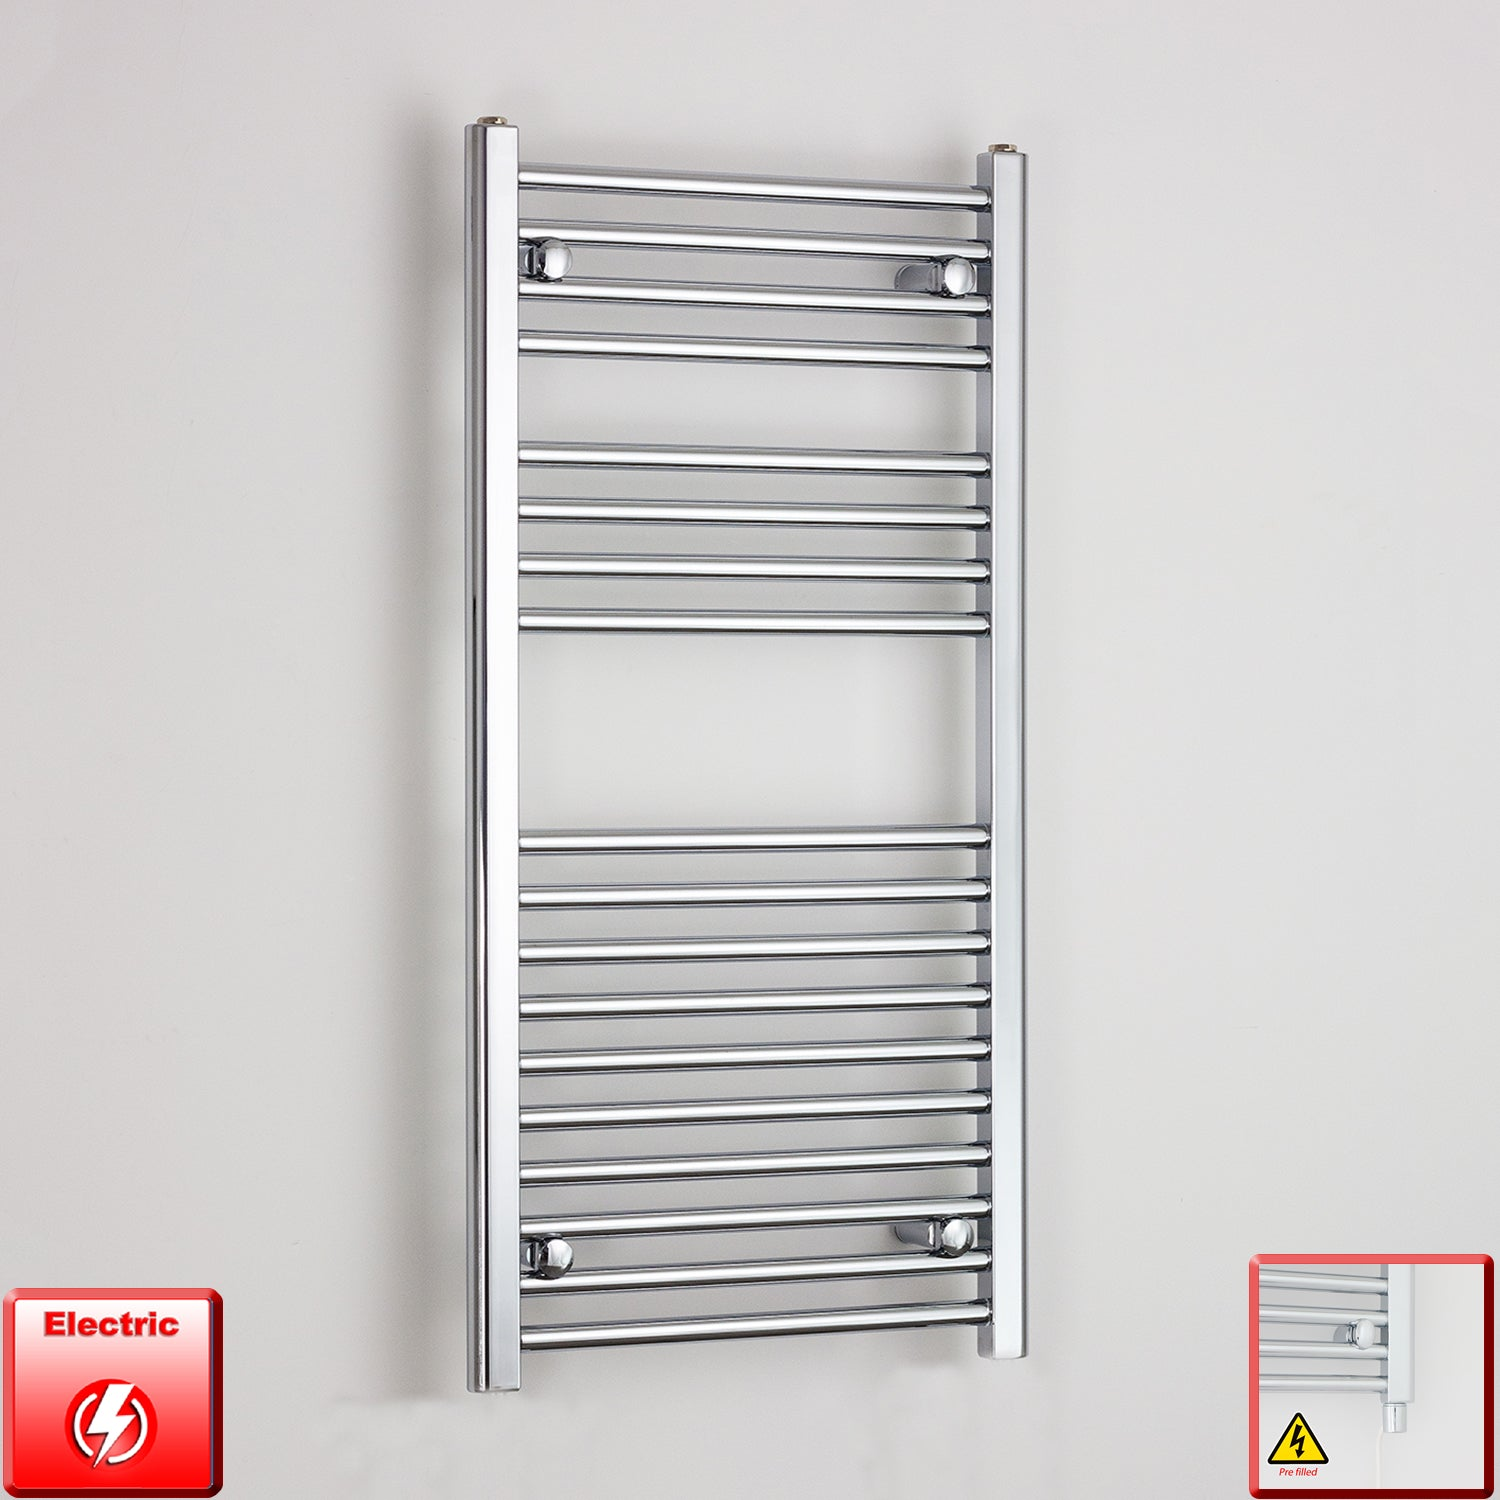 400mm Wide 1000mm High Pre-Filled Chrome Electric Towel Rail Radiator With Single Heat Element